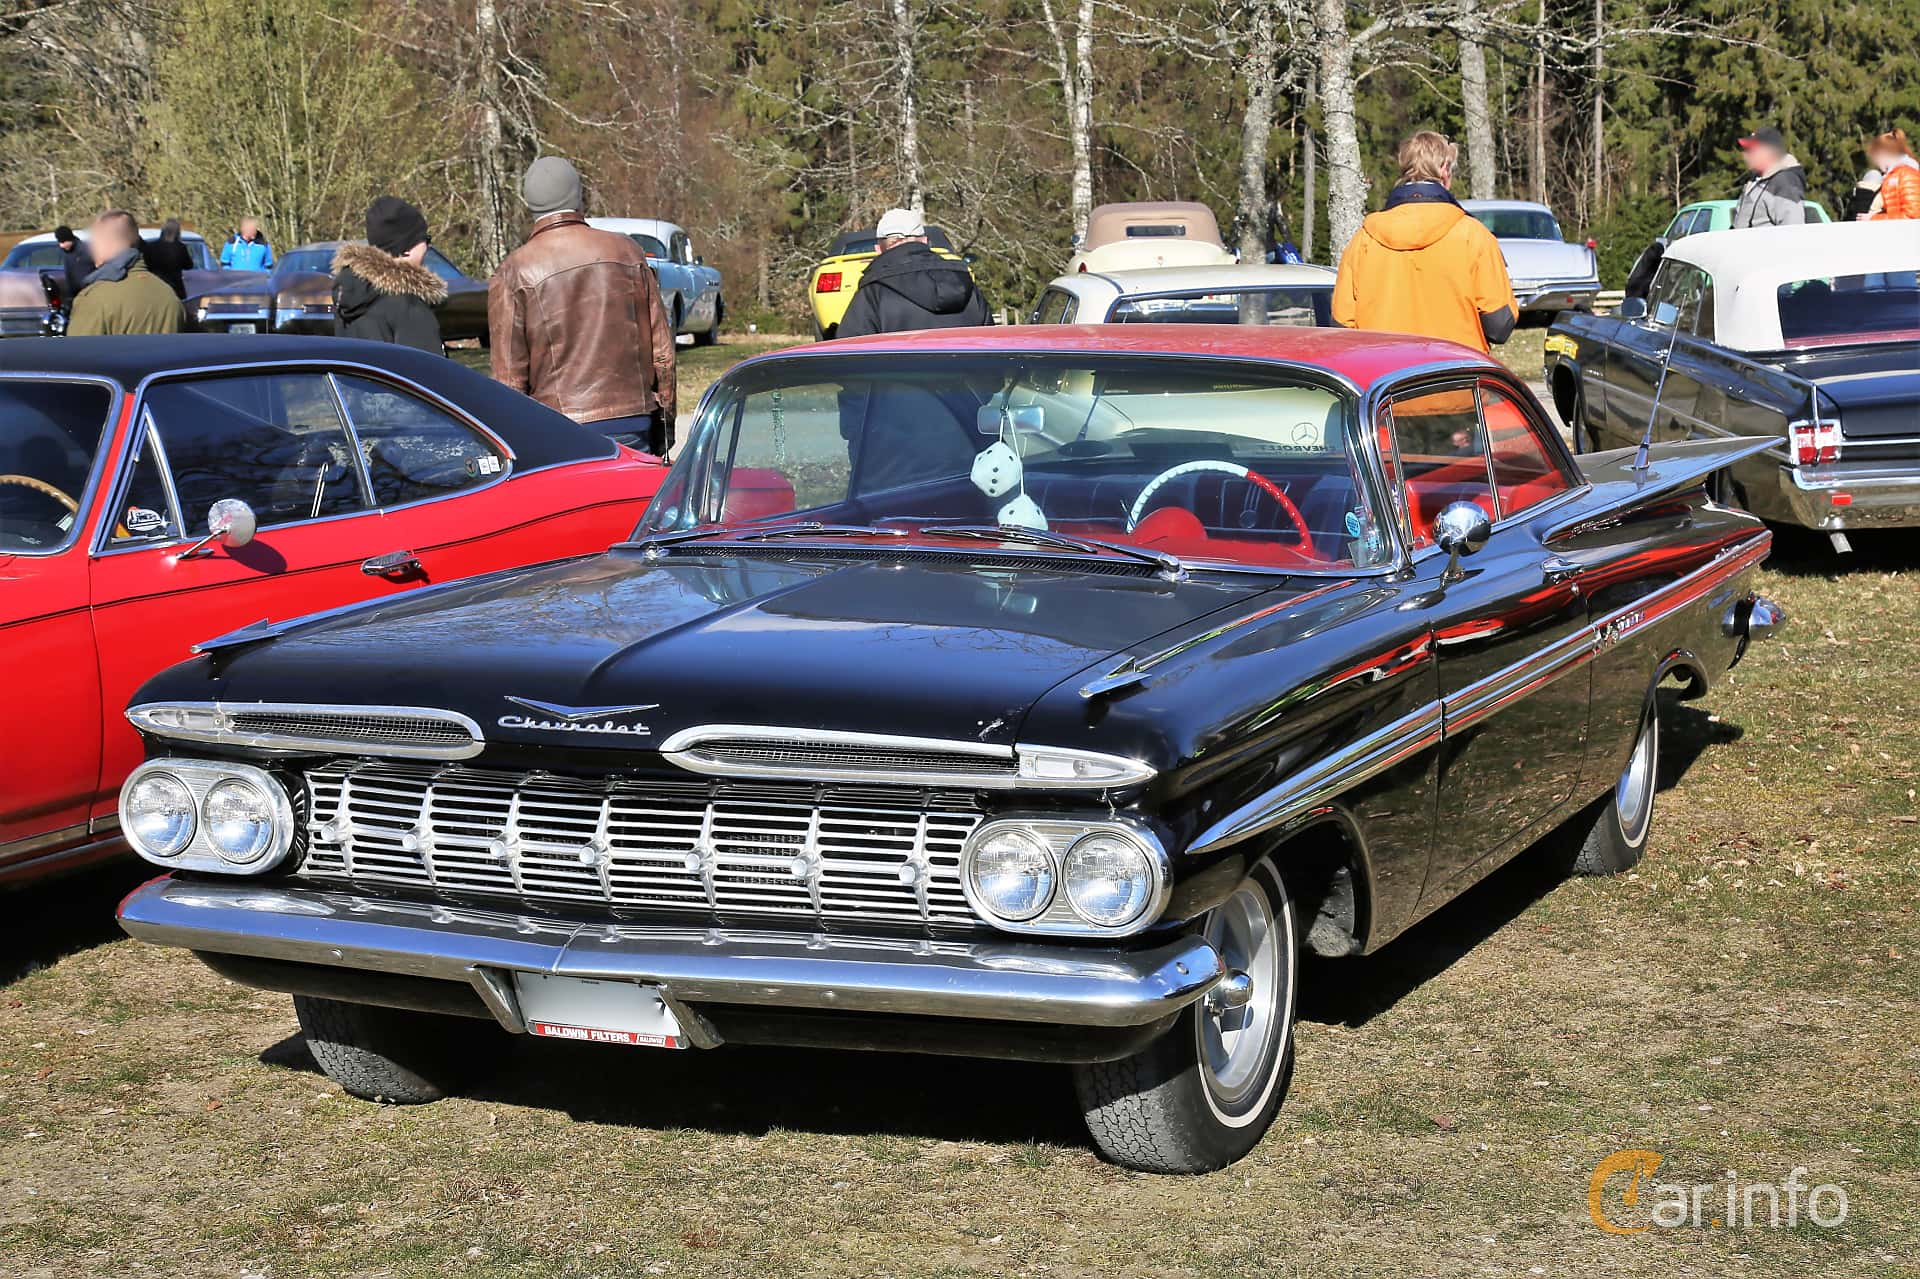 Chevrolet Impala Sport Coupé 4.6 V8 Powerglide, 233hp, 1959 at Uddevalla Veteranbilsmarknad Backamo, Ljungsk 2019